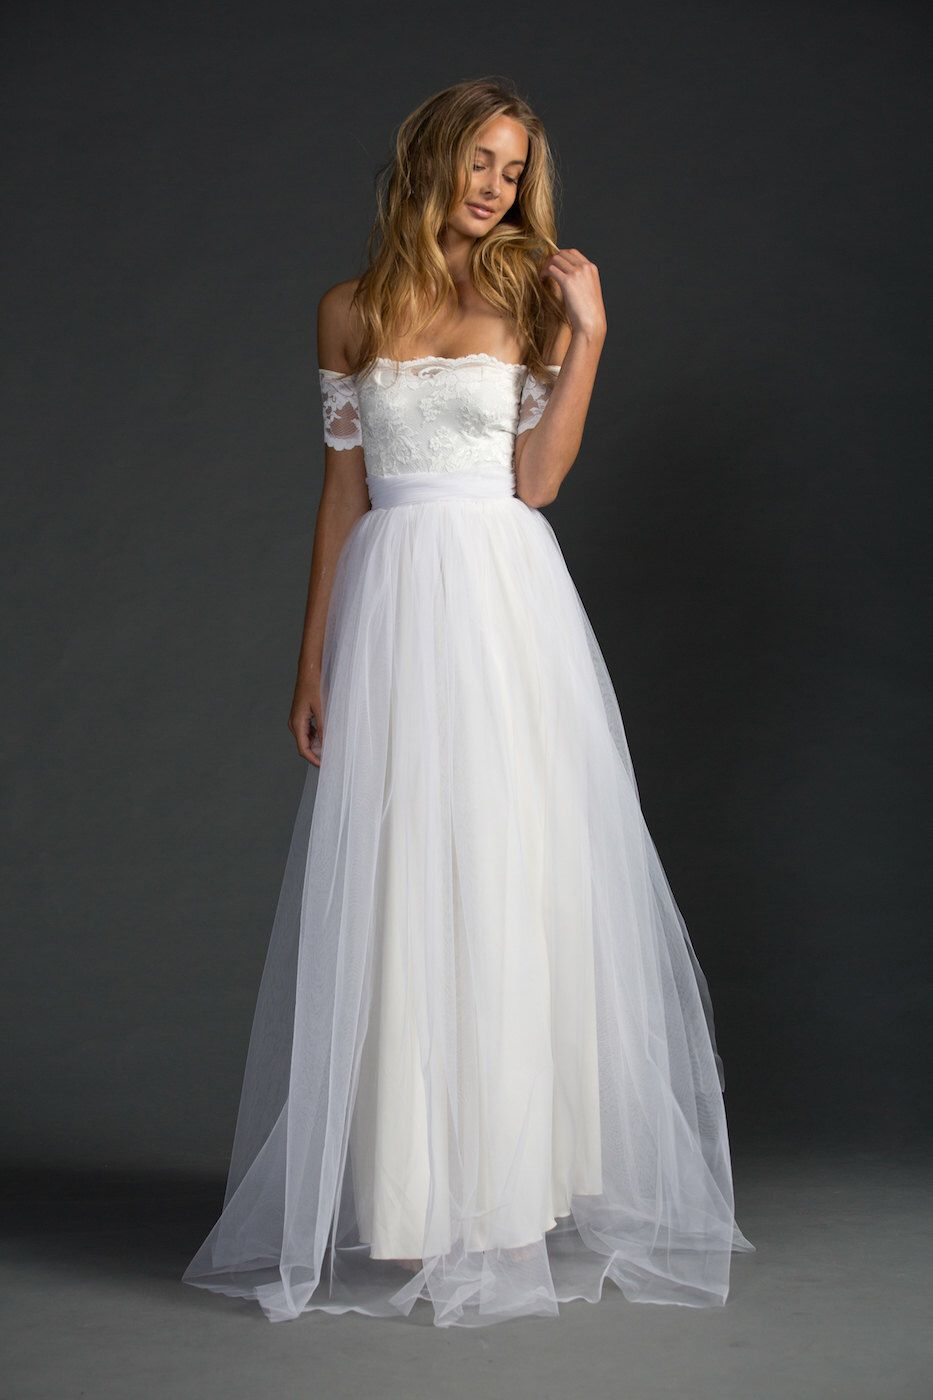 Boho lace wedding dress magical soft dreamy skirt with strapless